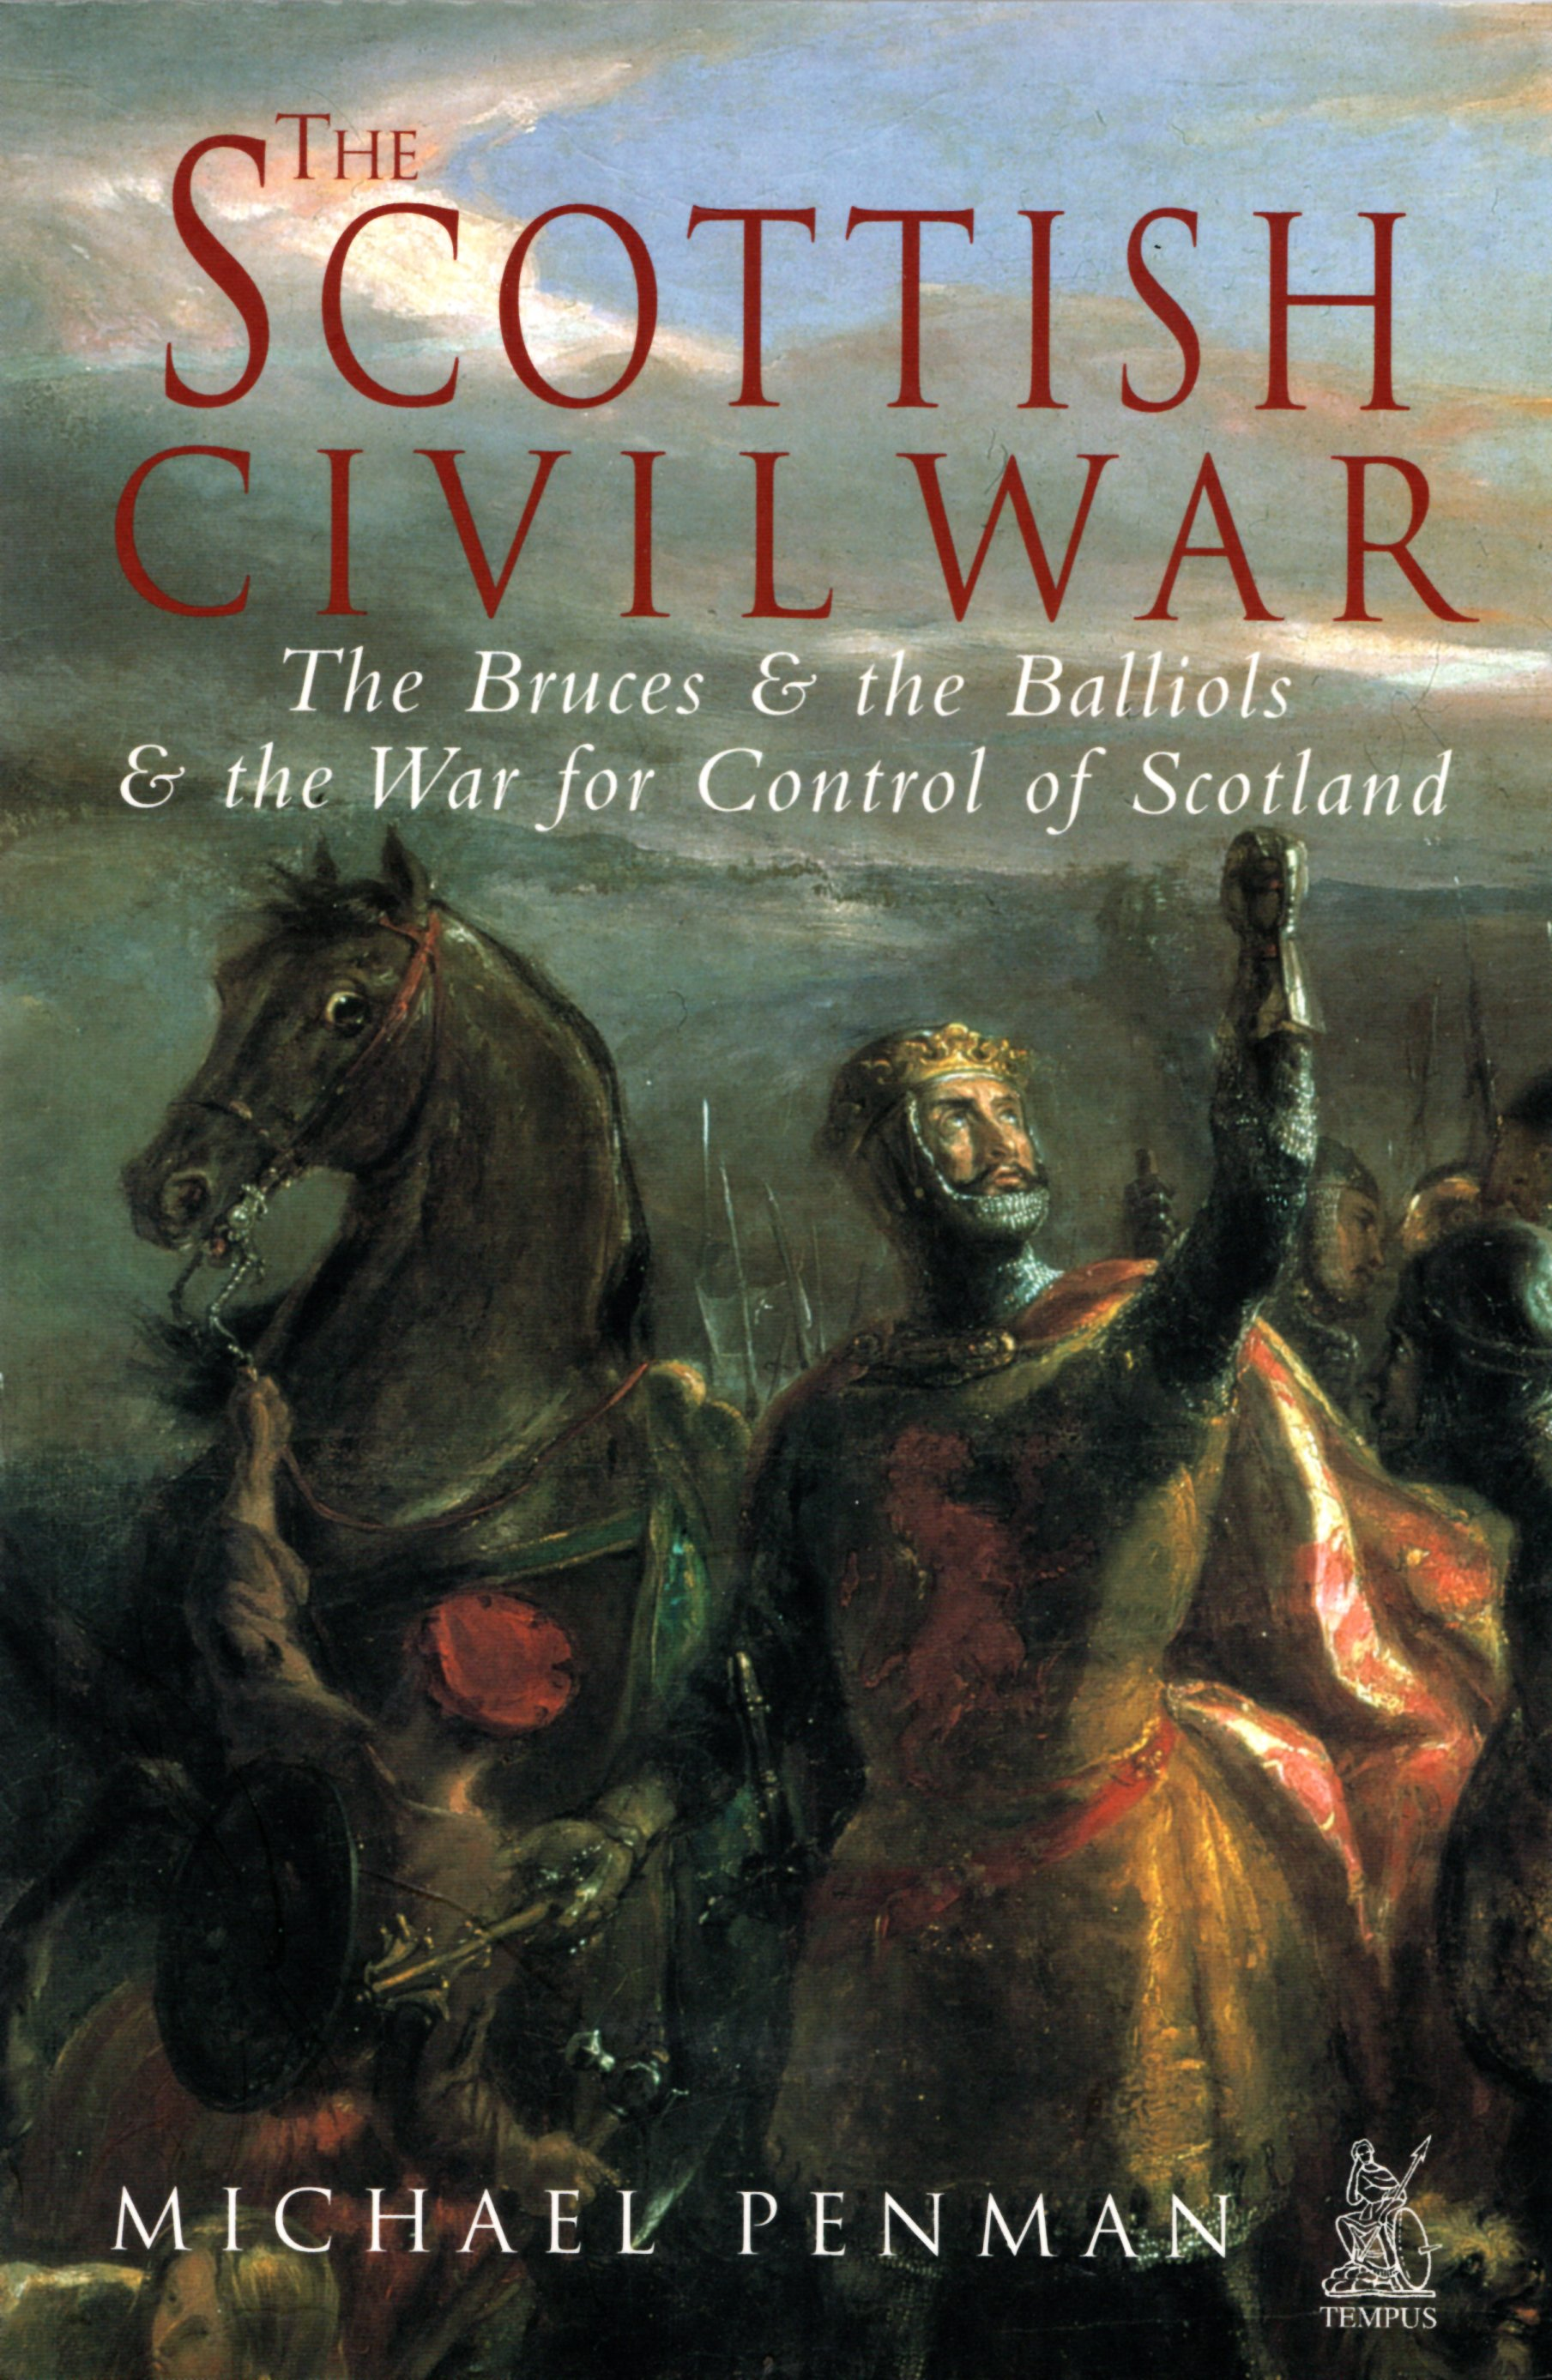 Image for The Scottish Civil War: The Bruces & the Balliols & the War for Control of Scotland